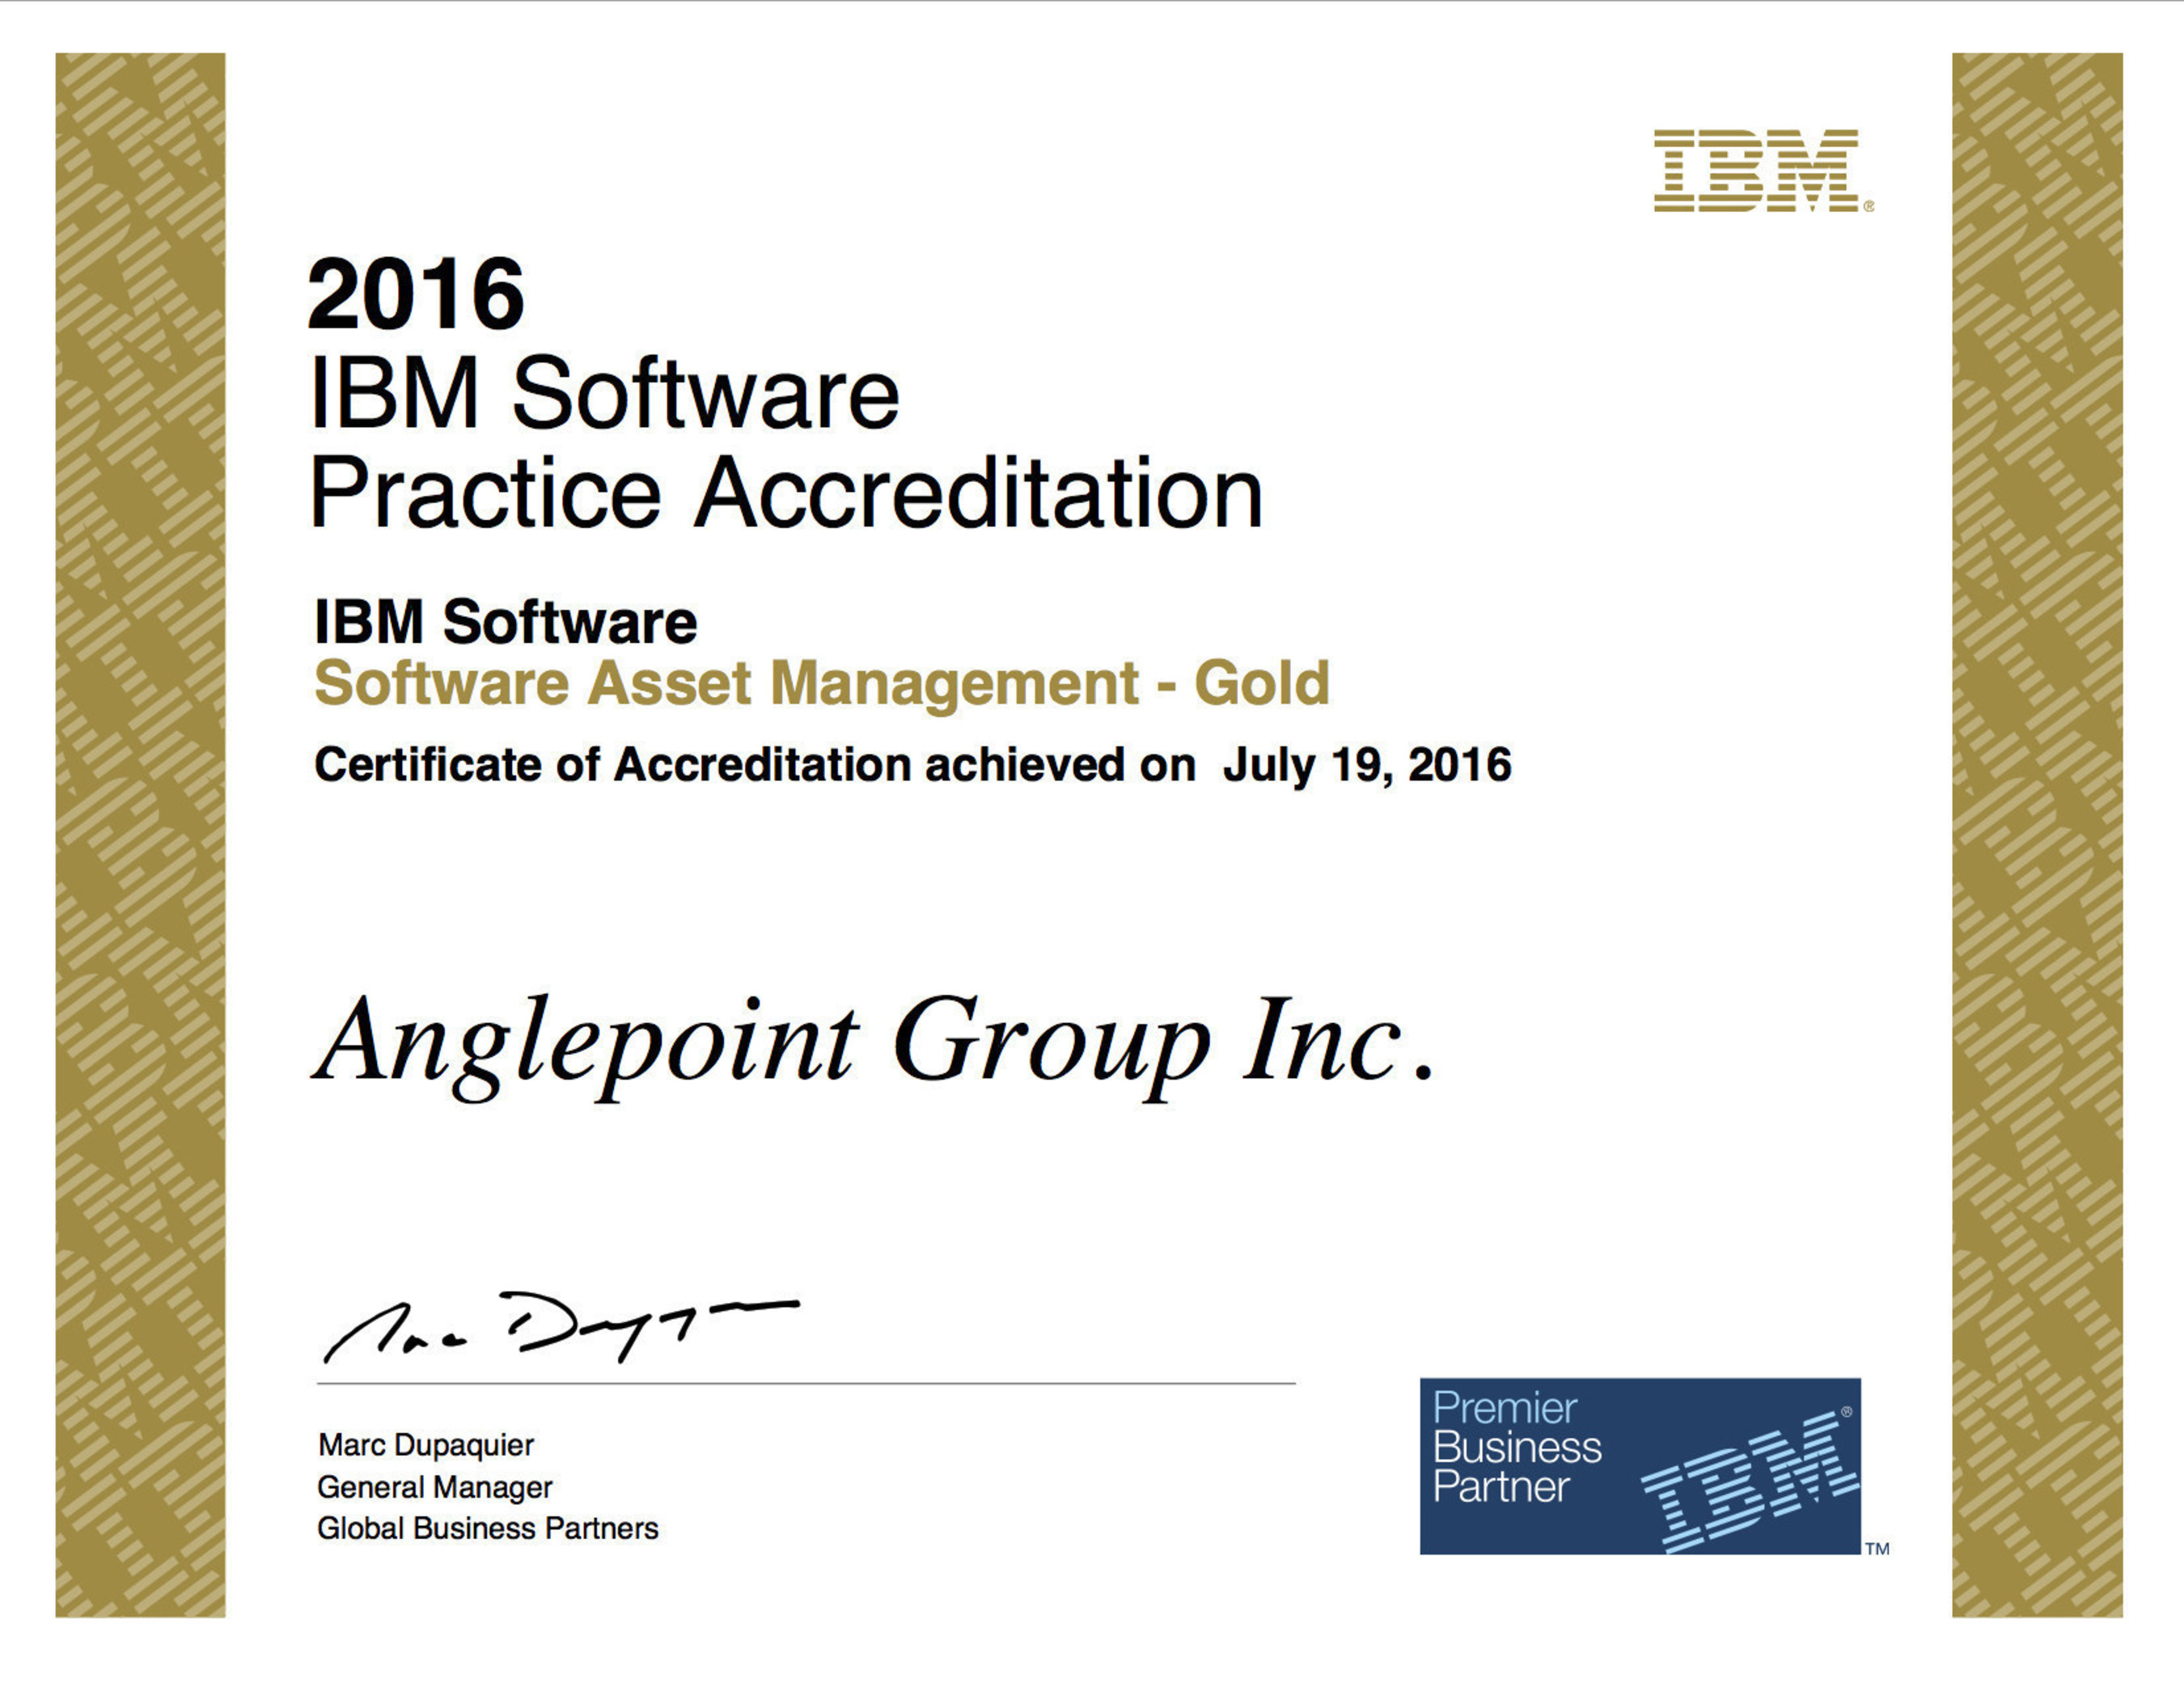 Anglepoint Receives Top Level IBM PartnerWorld Accreditation